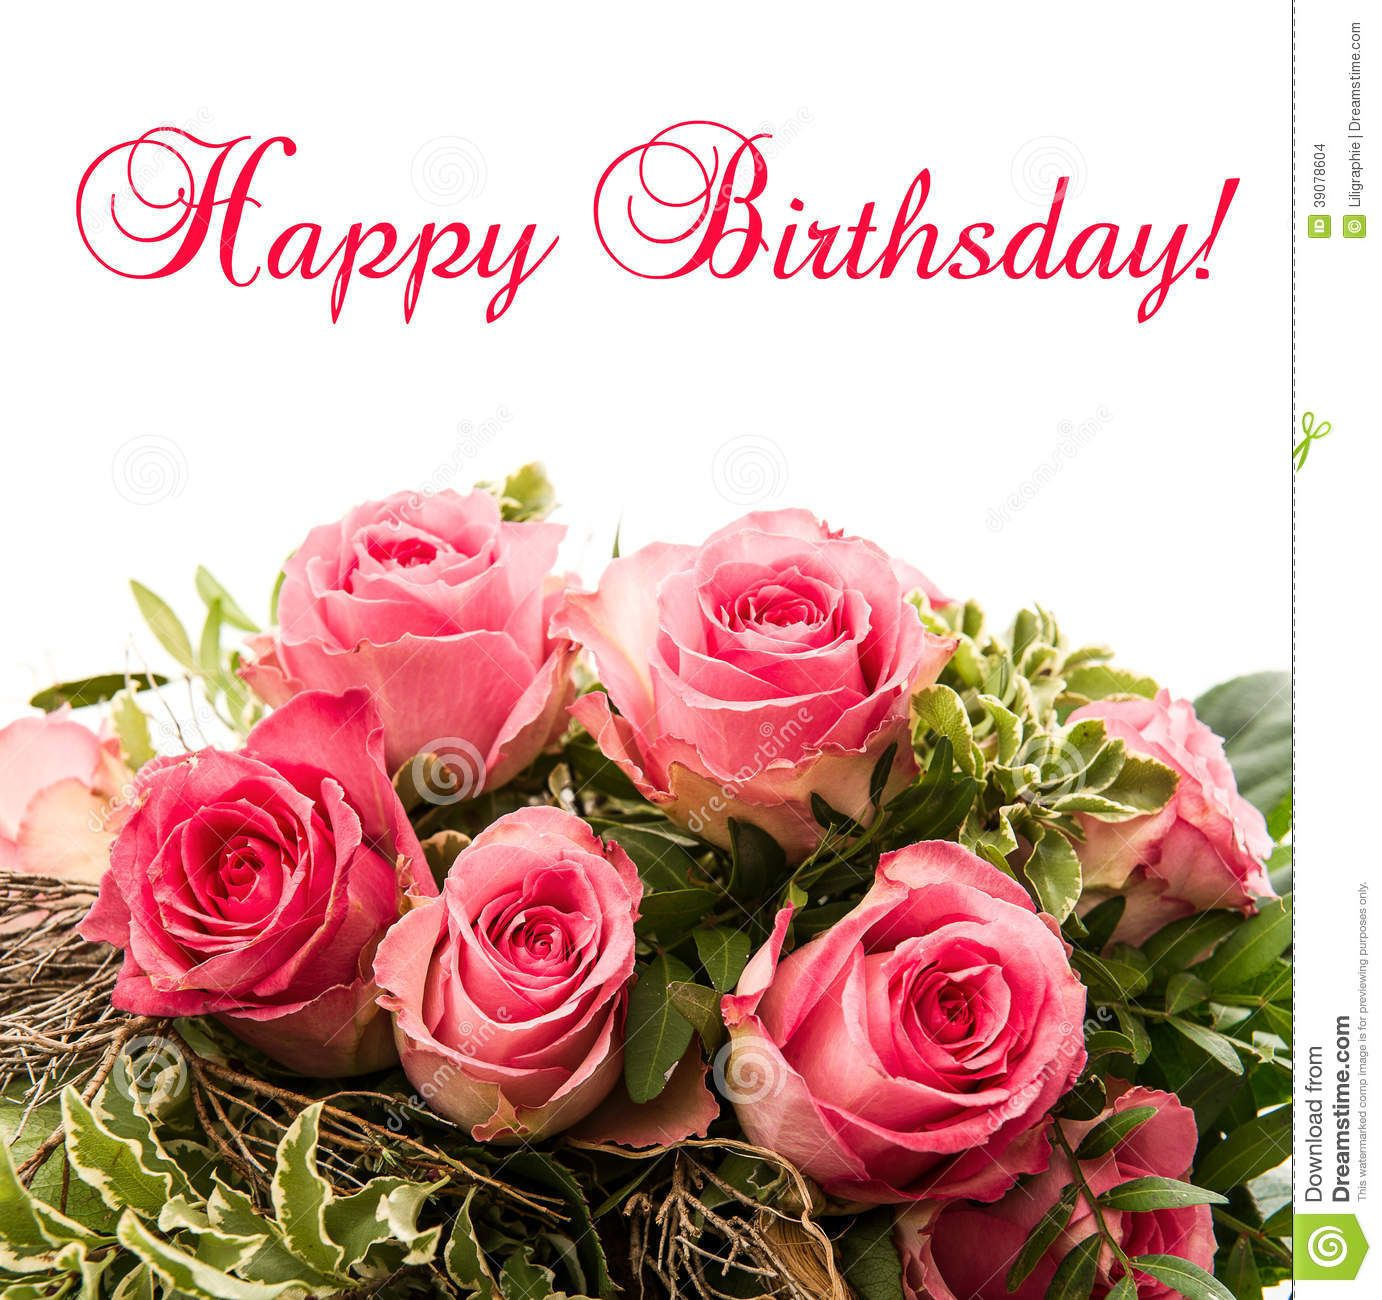 Roses Bouquet Card Happy Birthday Stock Photos 524 Roses Bouquet Card Happy Birthday Stock I Happy Birthday Flower Happy Birthday Rose Happy Birthday Bouquet